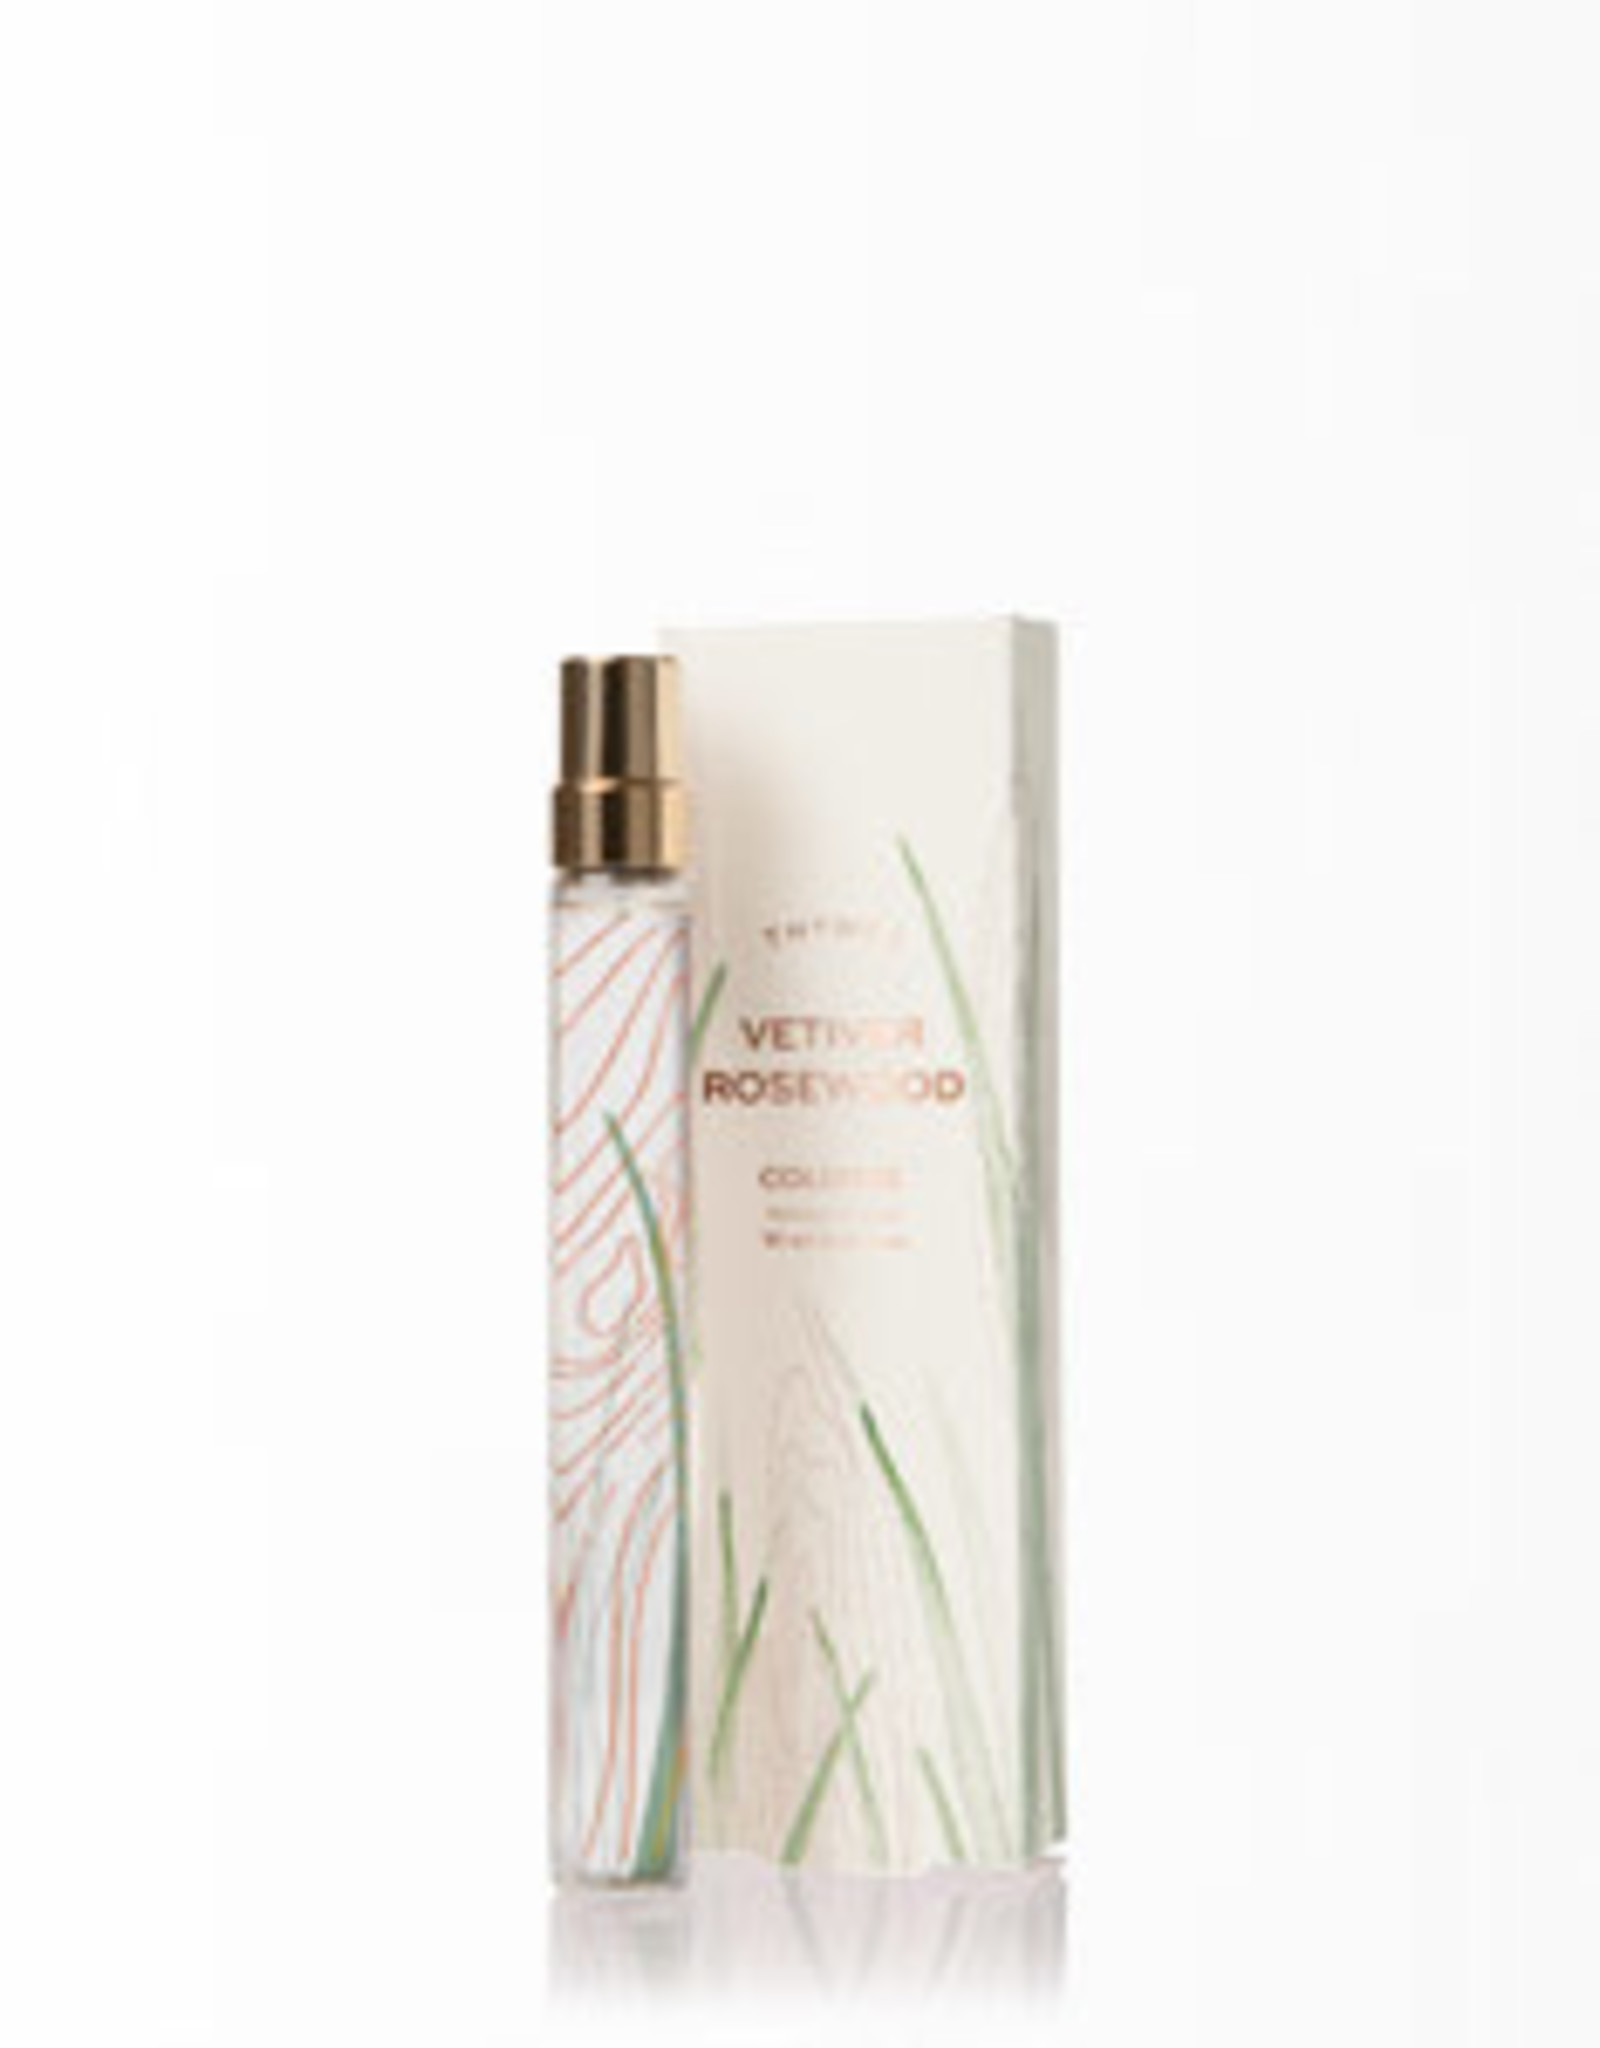 THYMES COLOGNE SPRAY PEN VETIVER ROSEWOOD -[DISCONTINUED]